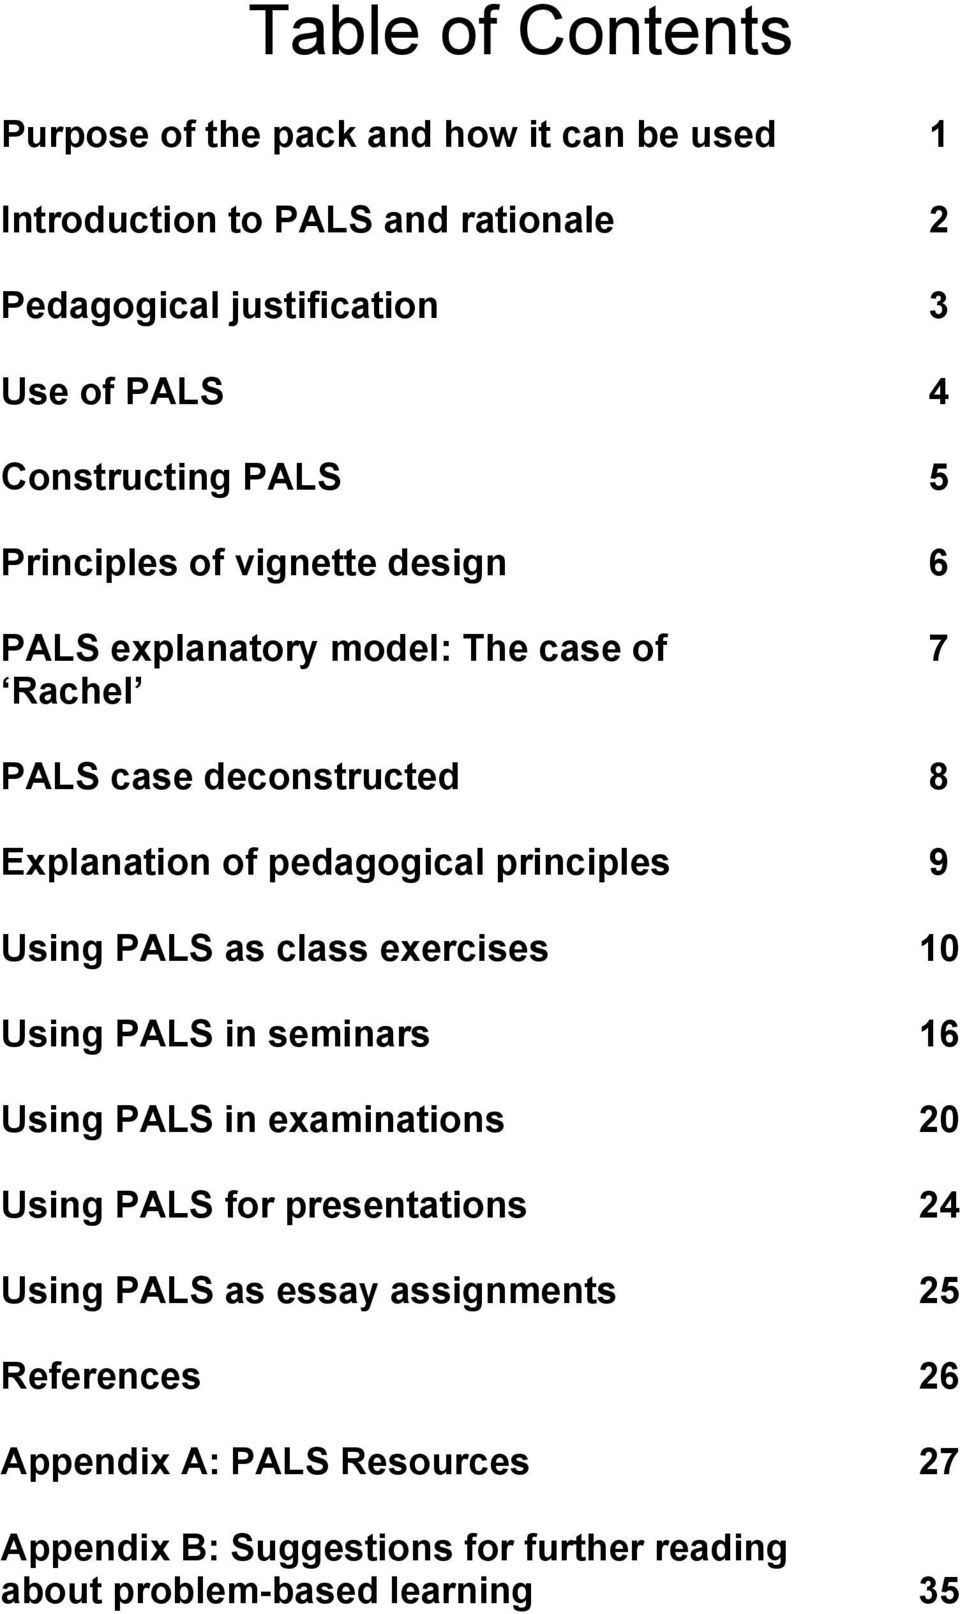 pedagogical principles 9 Using PALS as class exercises 10 Using PALS in seminars 16 Using PALS in examinations 20 Using PALS for presentations